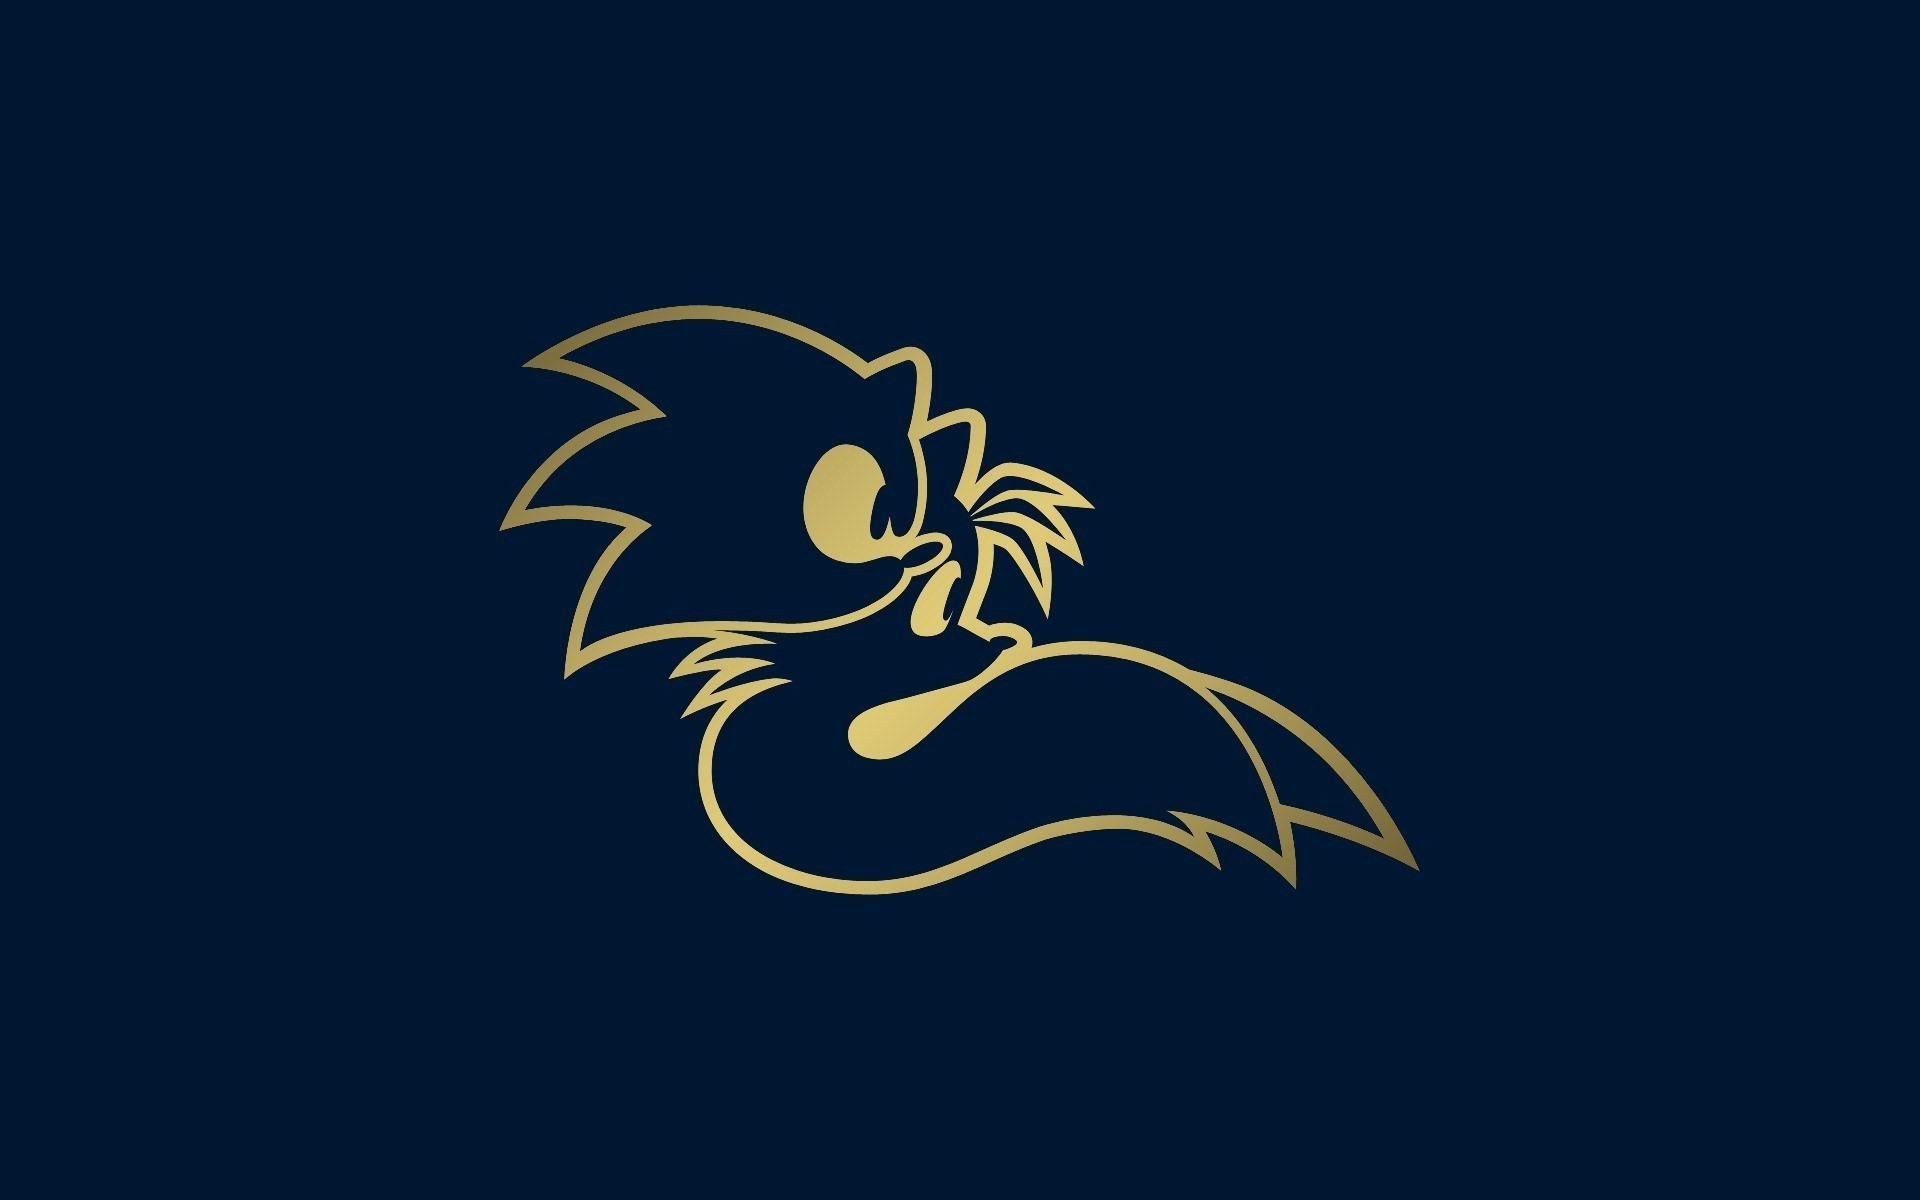 1920x1200 Sonic The Hedgehog, Tails (character), Minimalism, Video Games